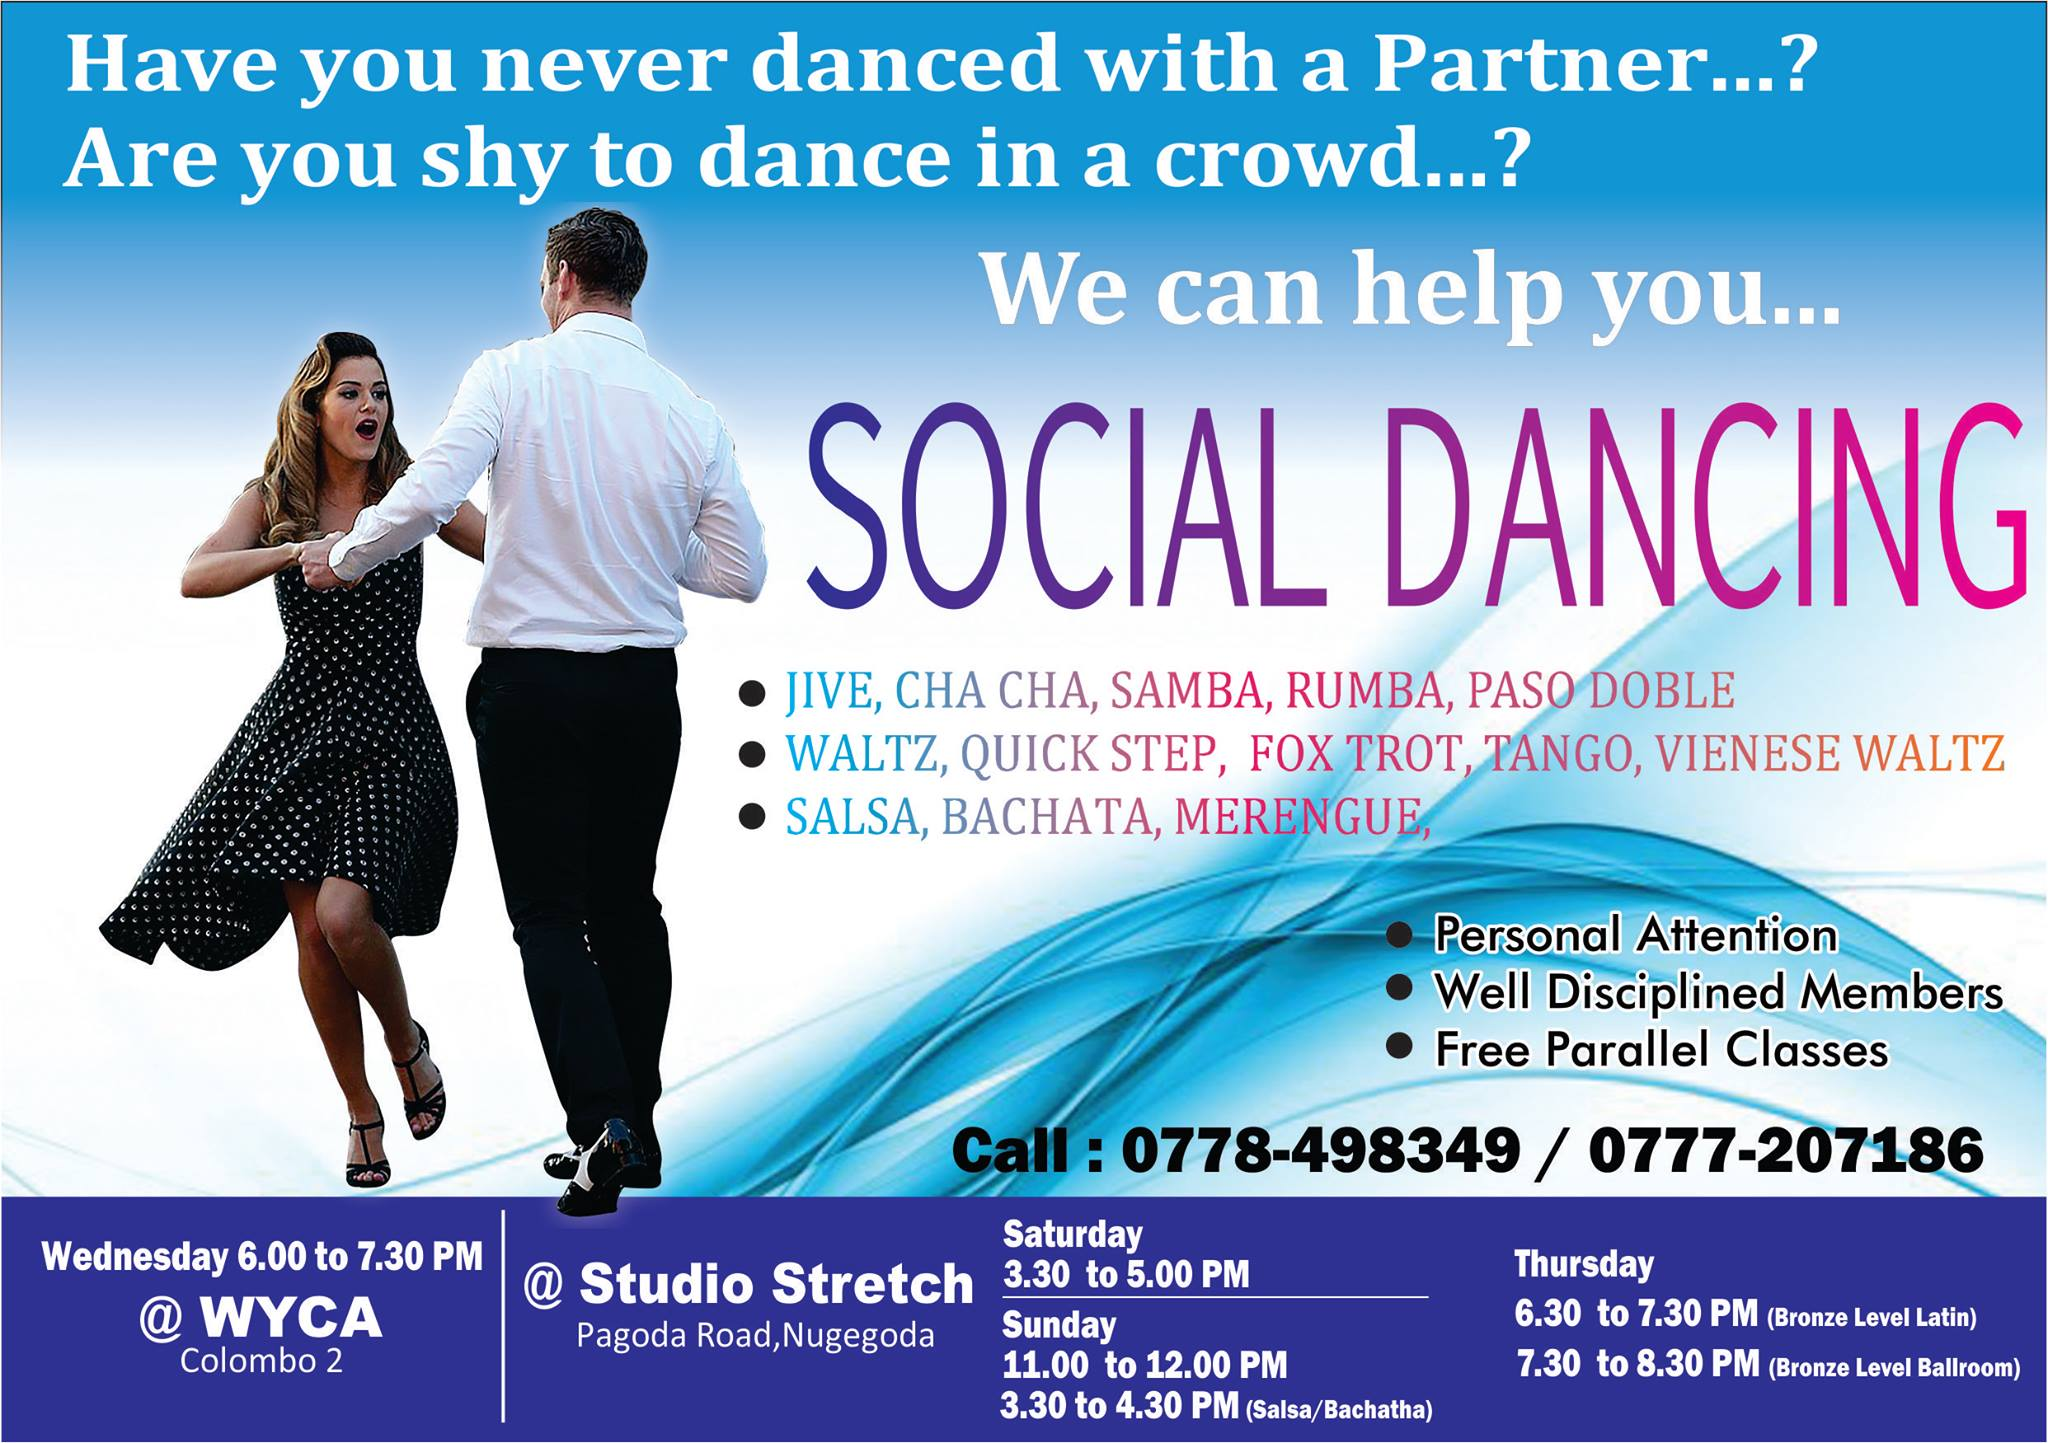 Royal Dancing Academy in Colombo